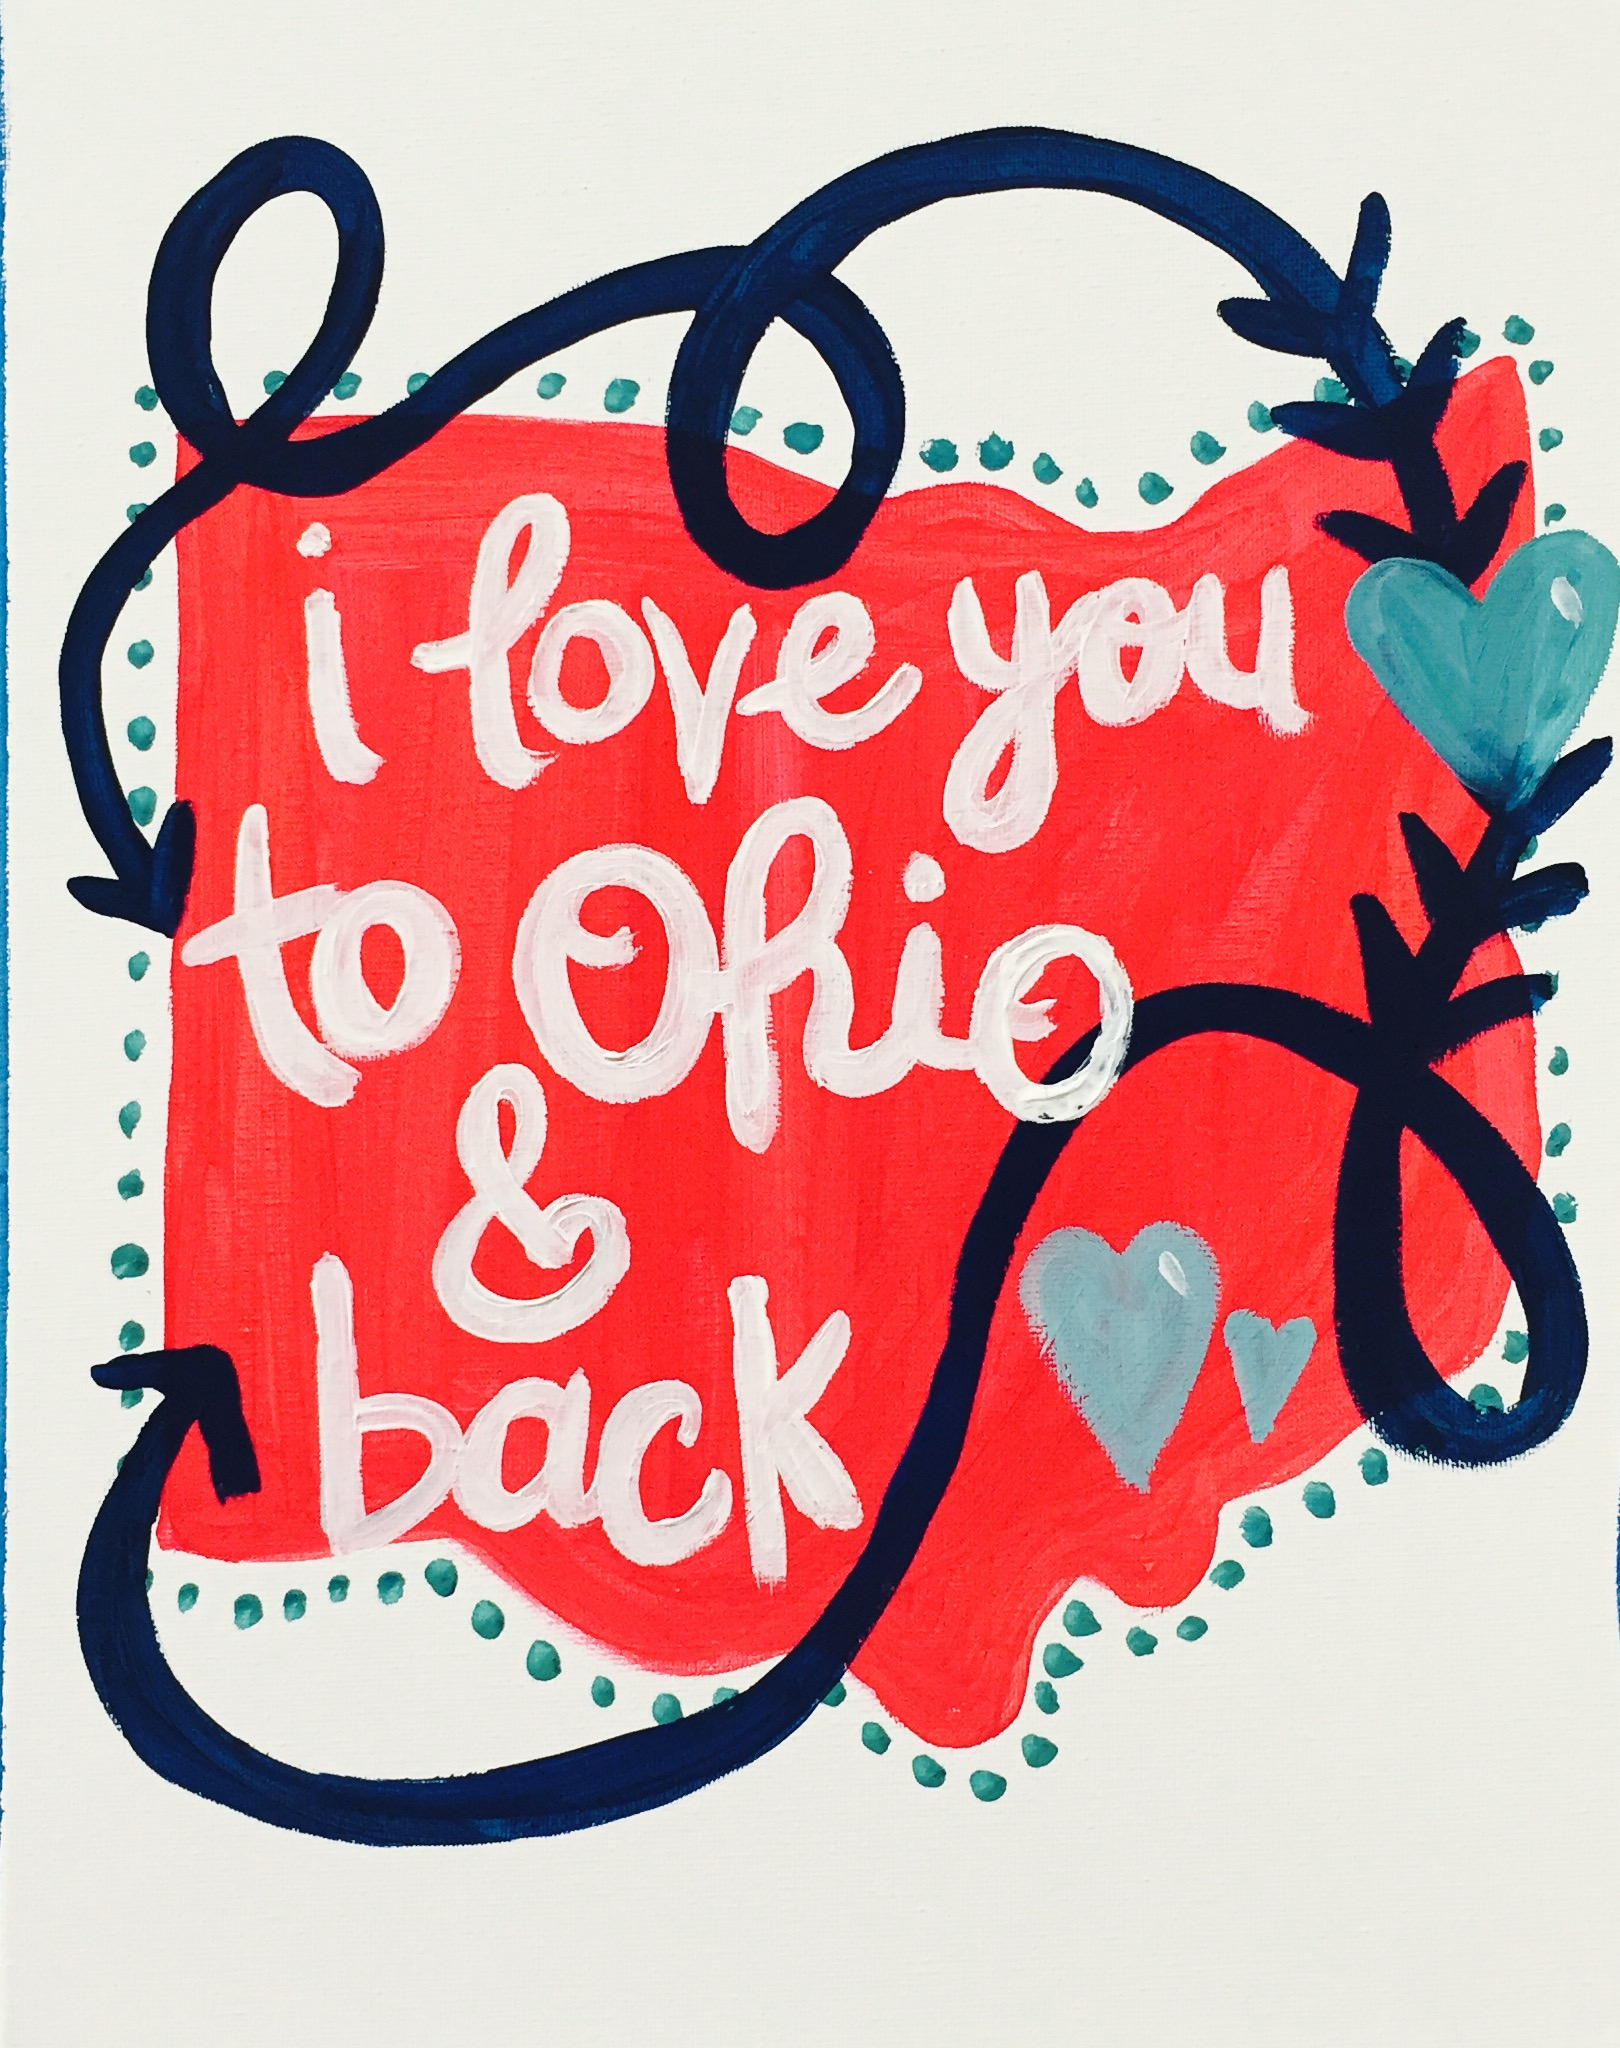 Love you to Ohio & back